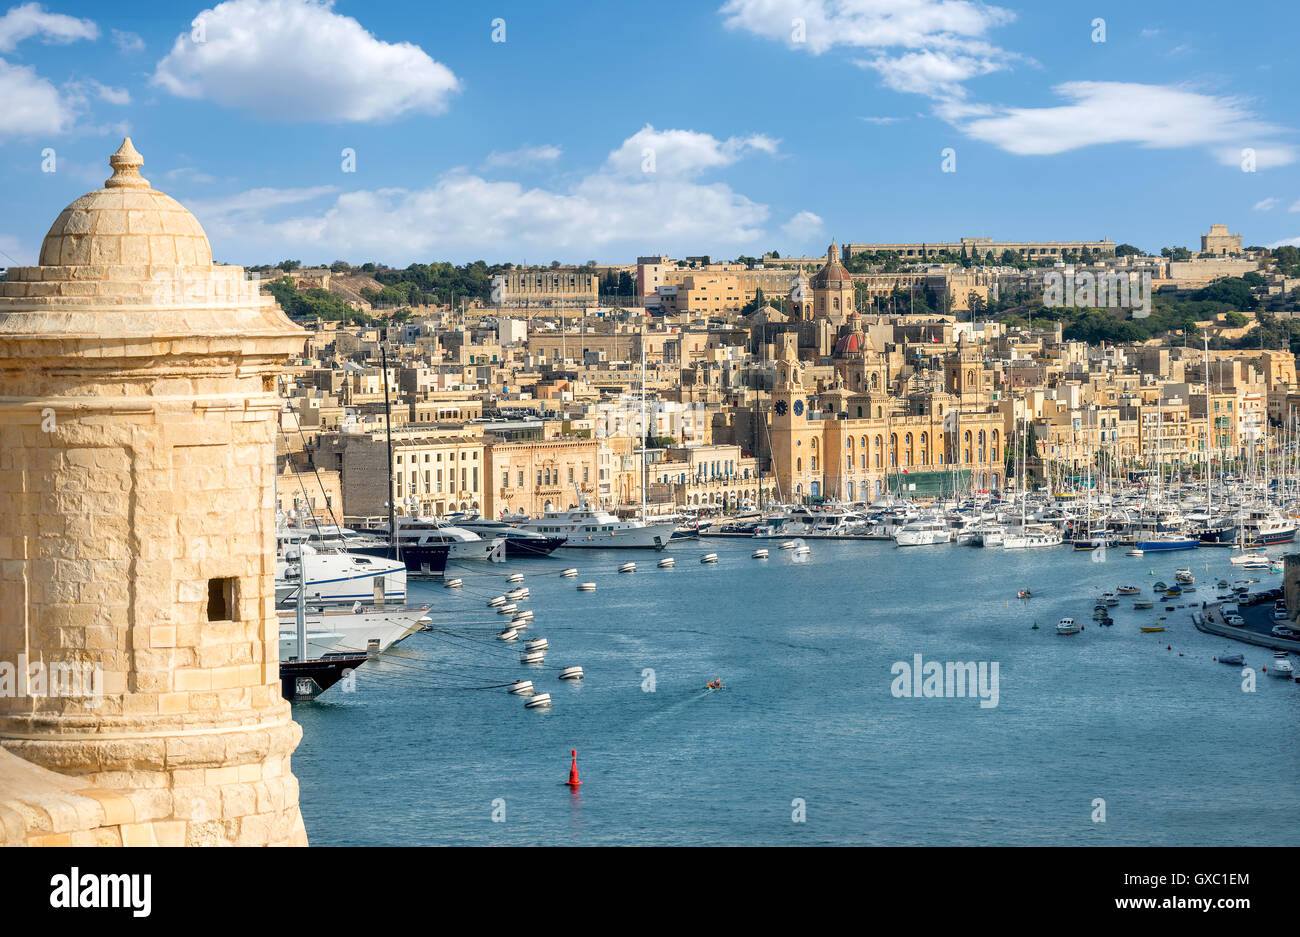 Sentry tower and view to Grand Harbour. Valletta, Malta - Stock Image